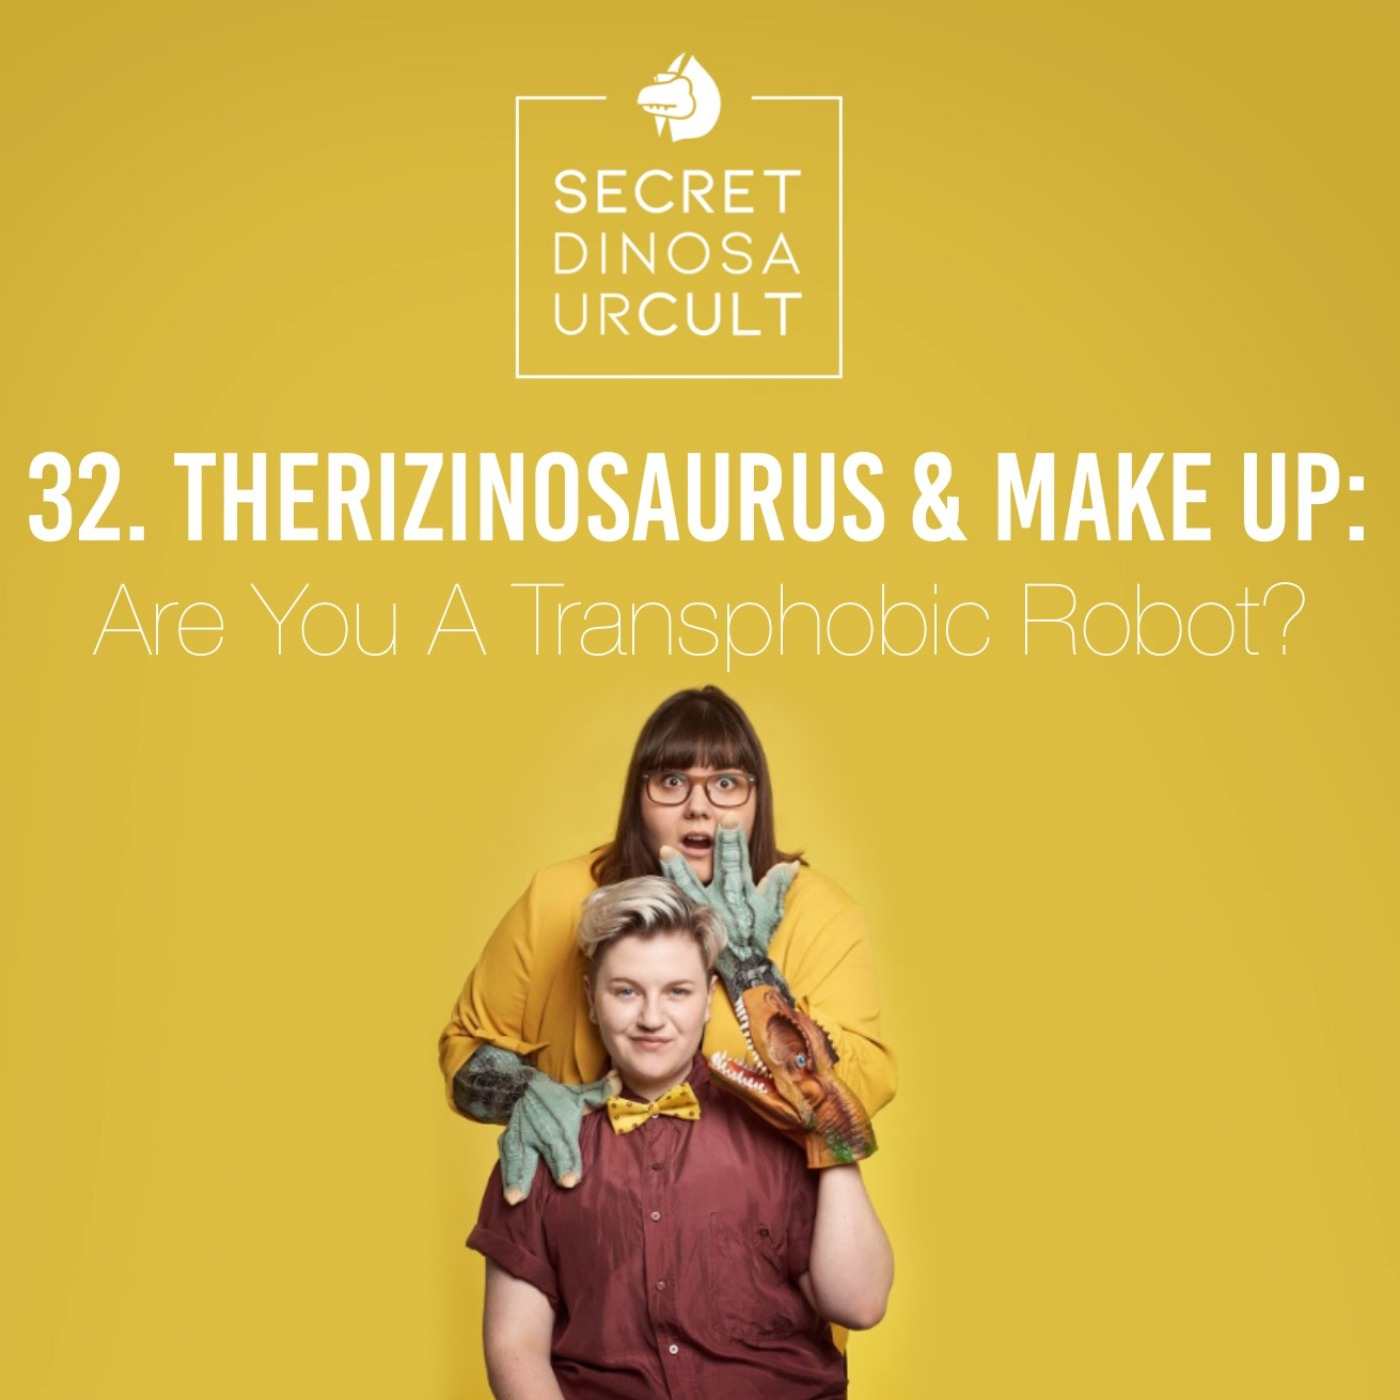 32. Therizinosaurus & Make Up: Are You A Transphobic Robot?